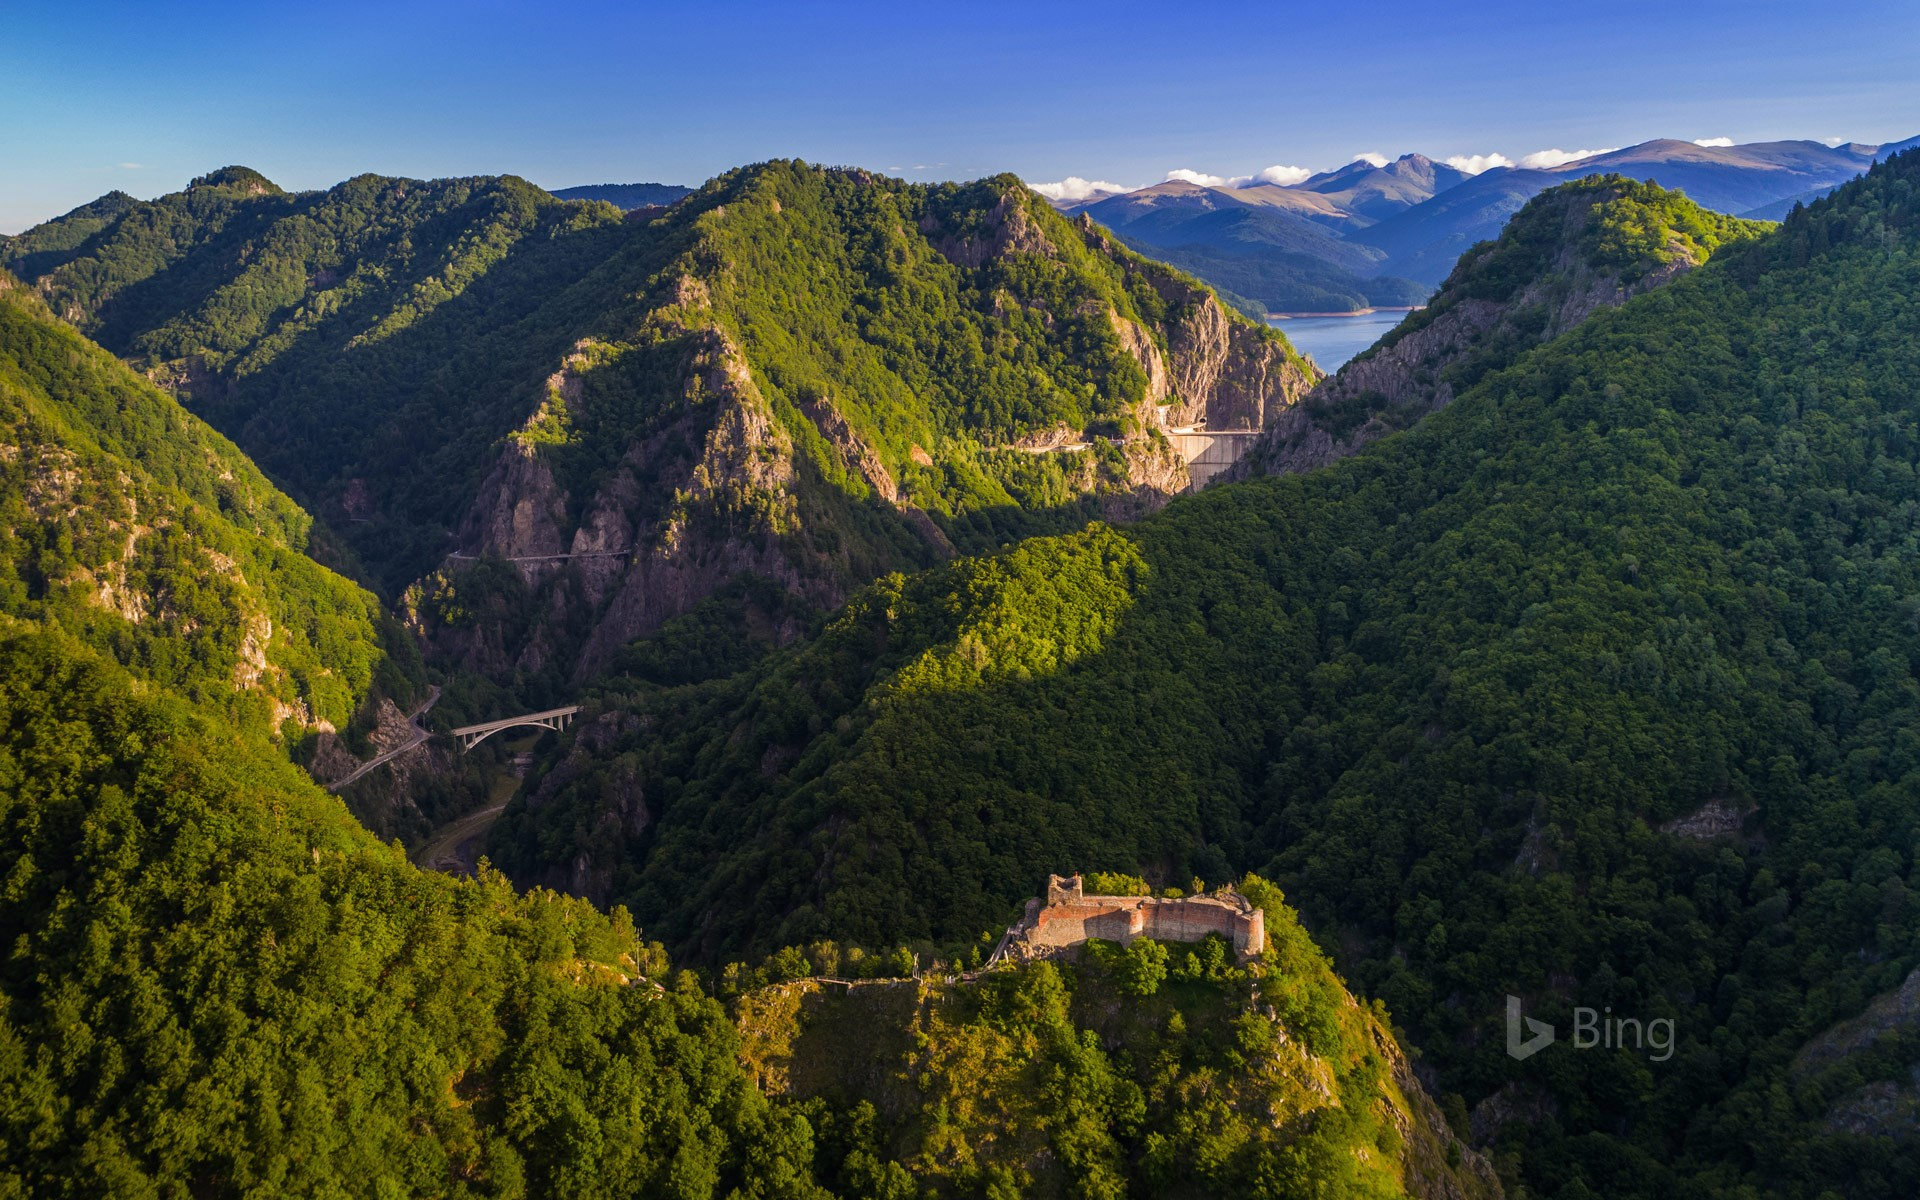 Poenari Castle on Mount Cetatea, Făgăraș Mountains, Romania